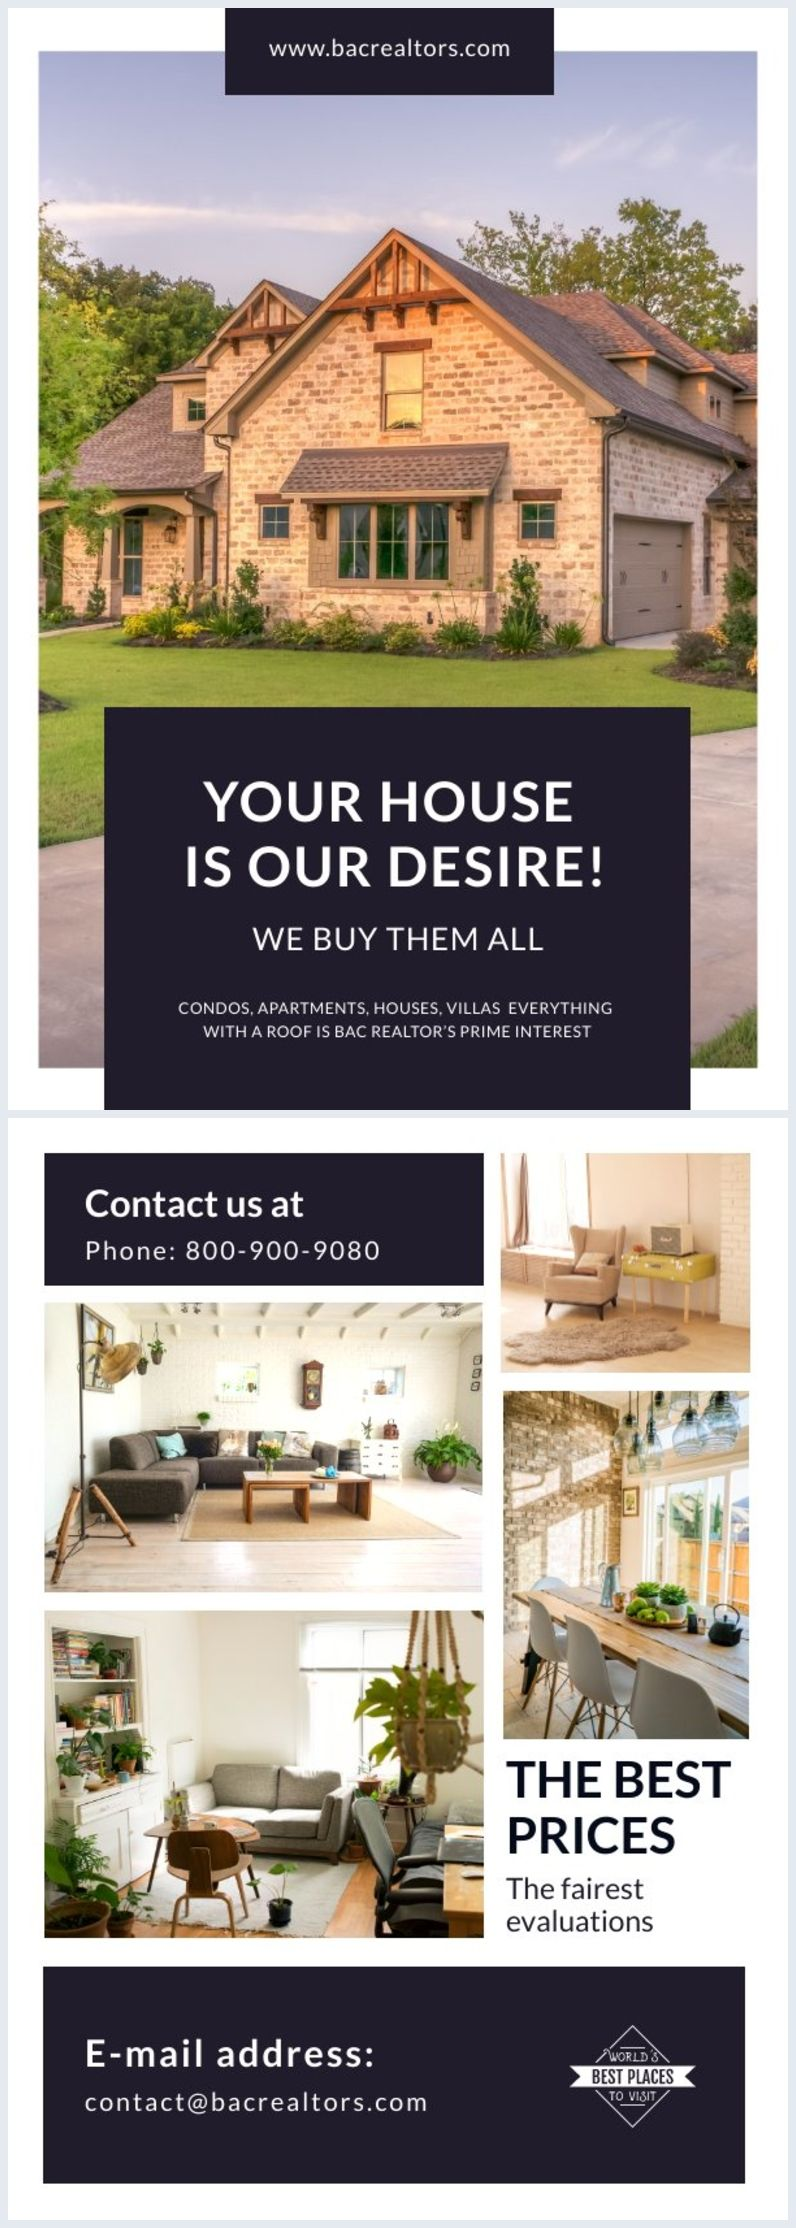 We Buy Houses Flyer Template We Buy Houses Home Buying House